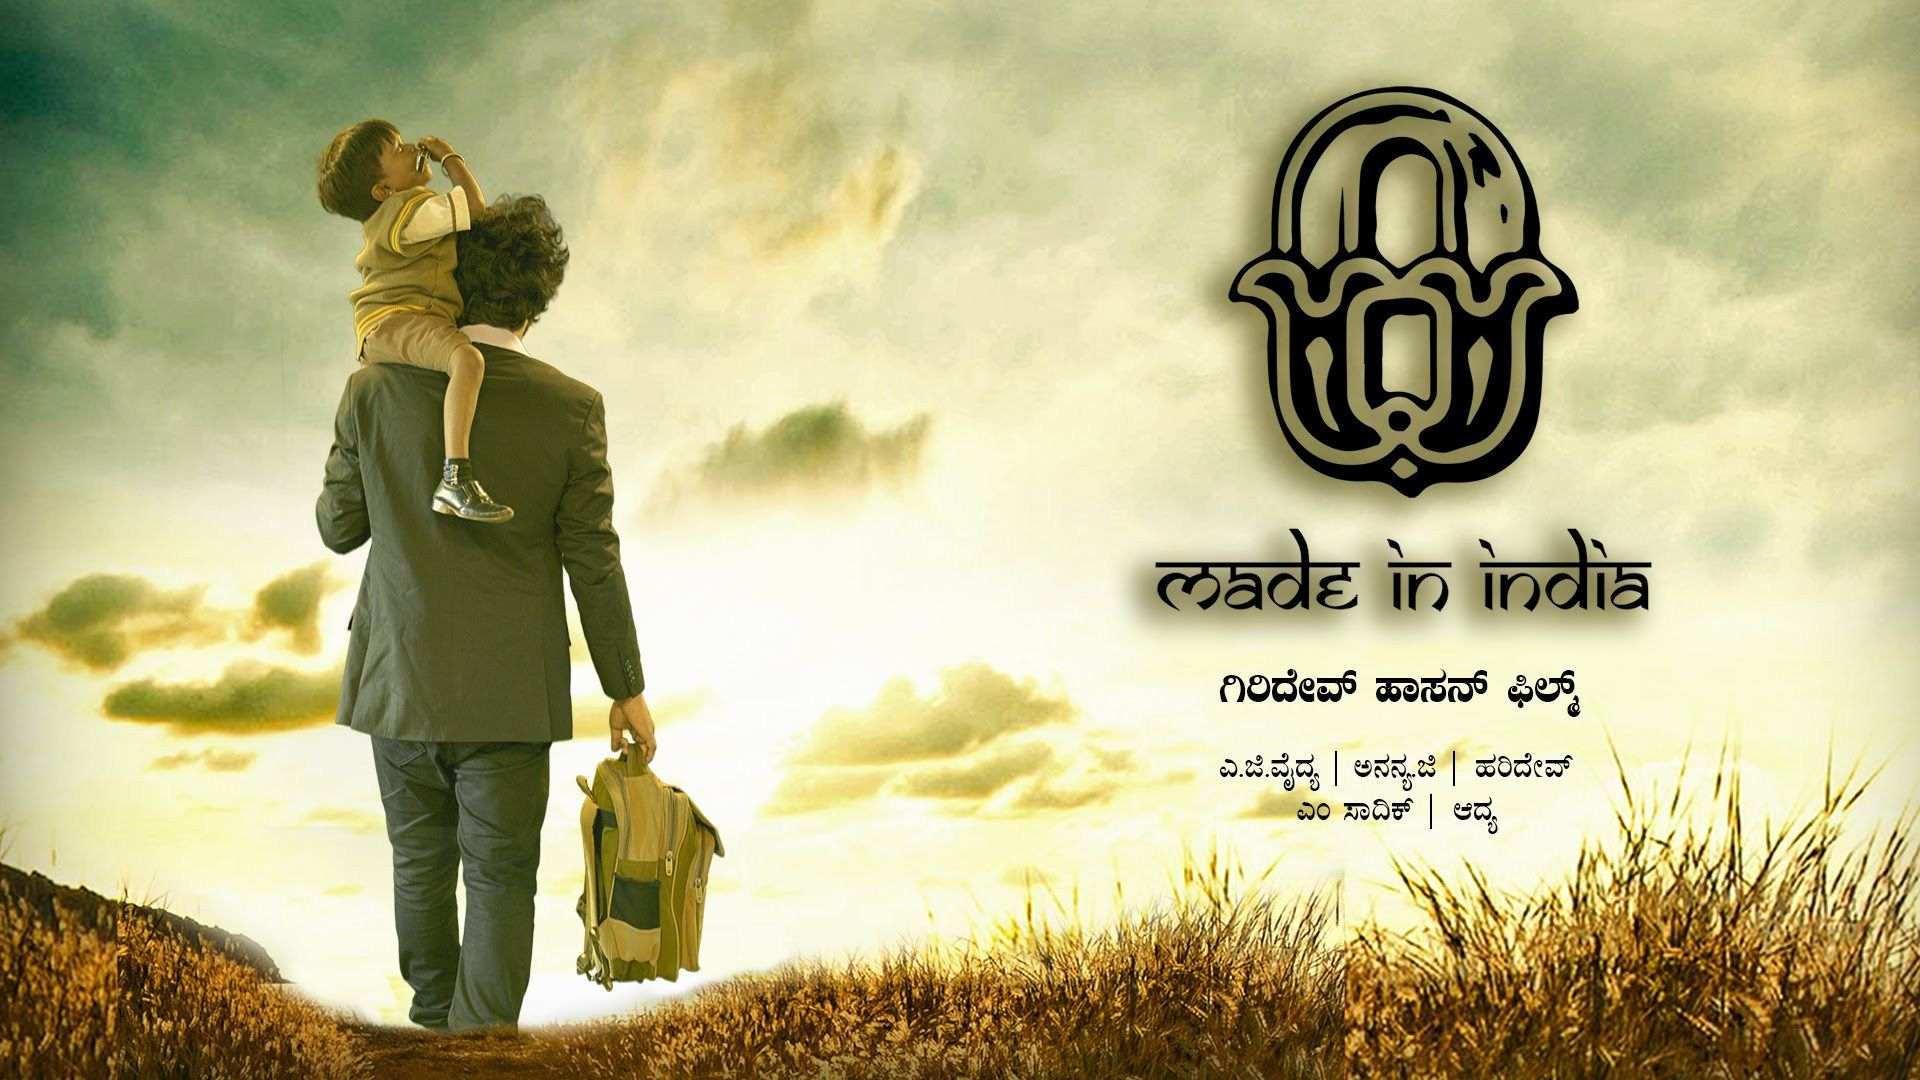 Zero Made In India 2016 Kannada Movie Hindi Dubbed Online Watch And